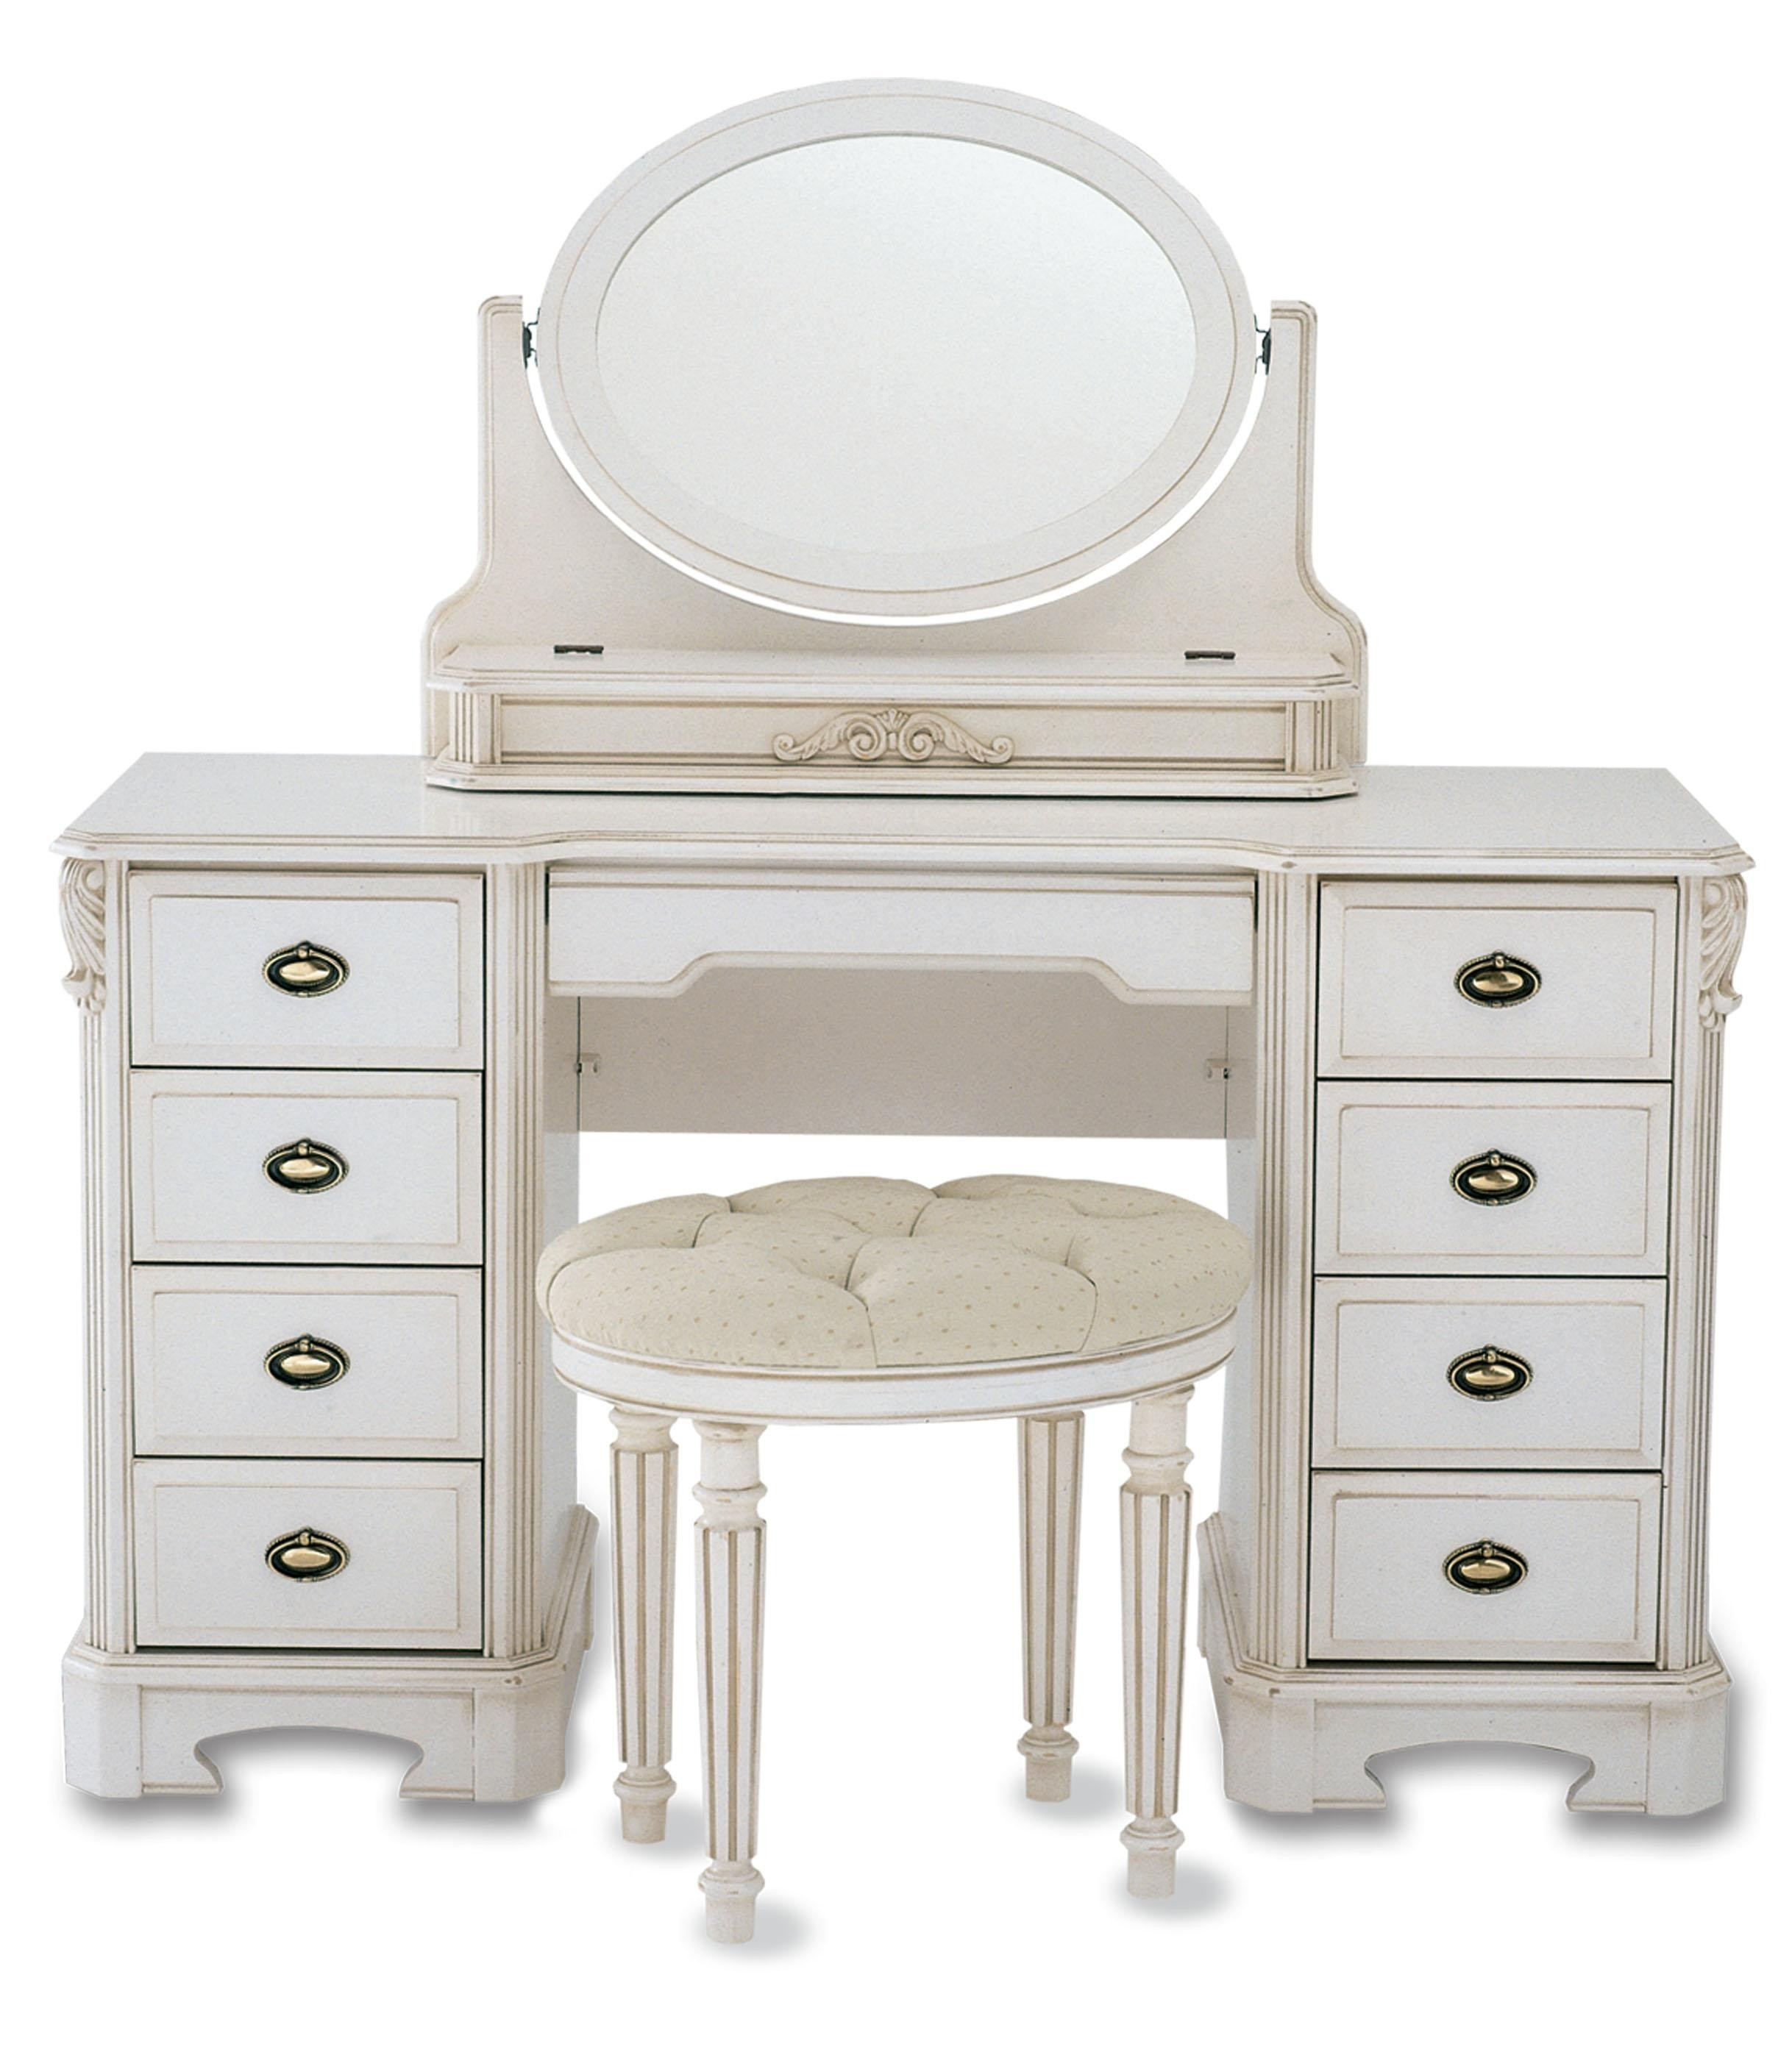 Makeup Tables For Sale Decorative Table Decoration Pertaining To Antique Small Mirrors (Image 12 of 15)